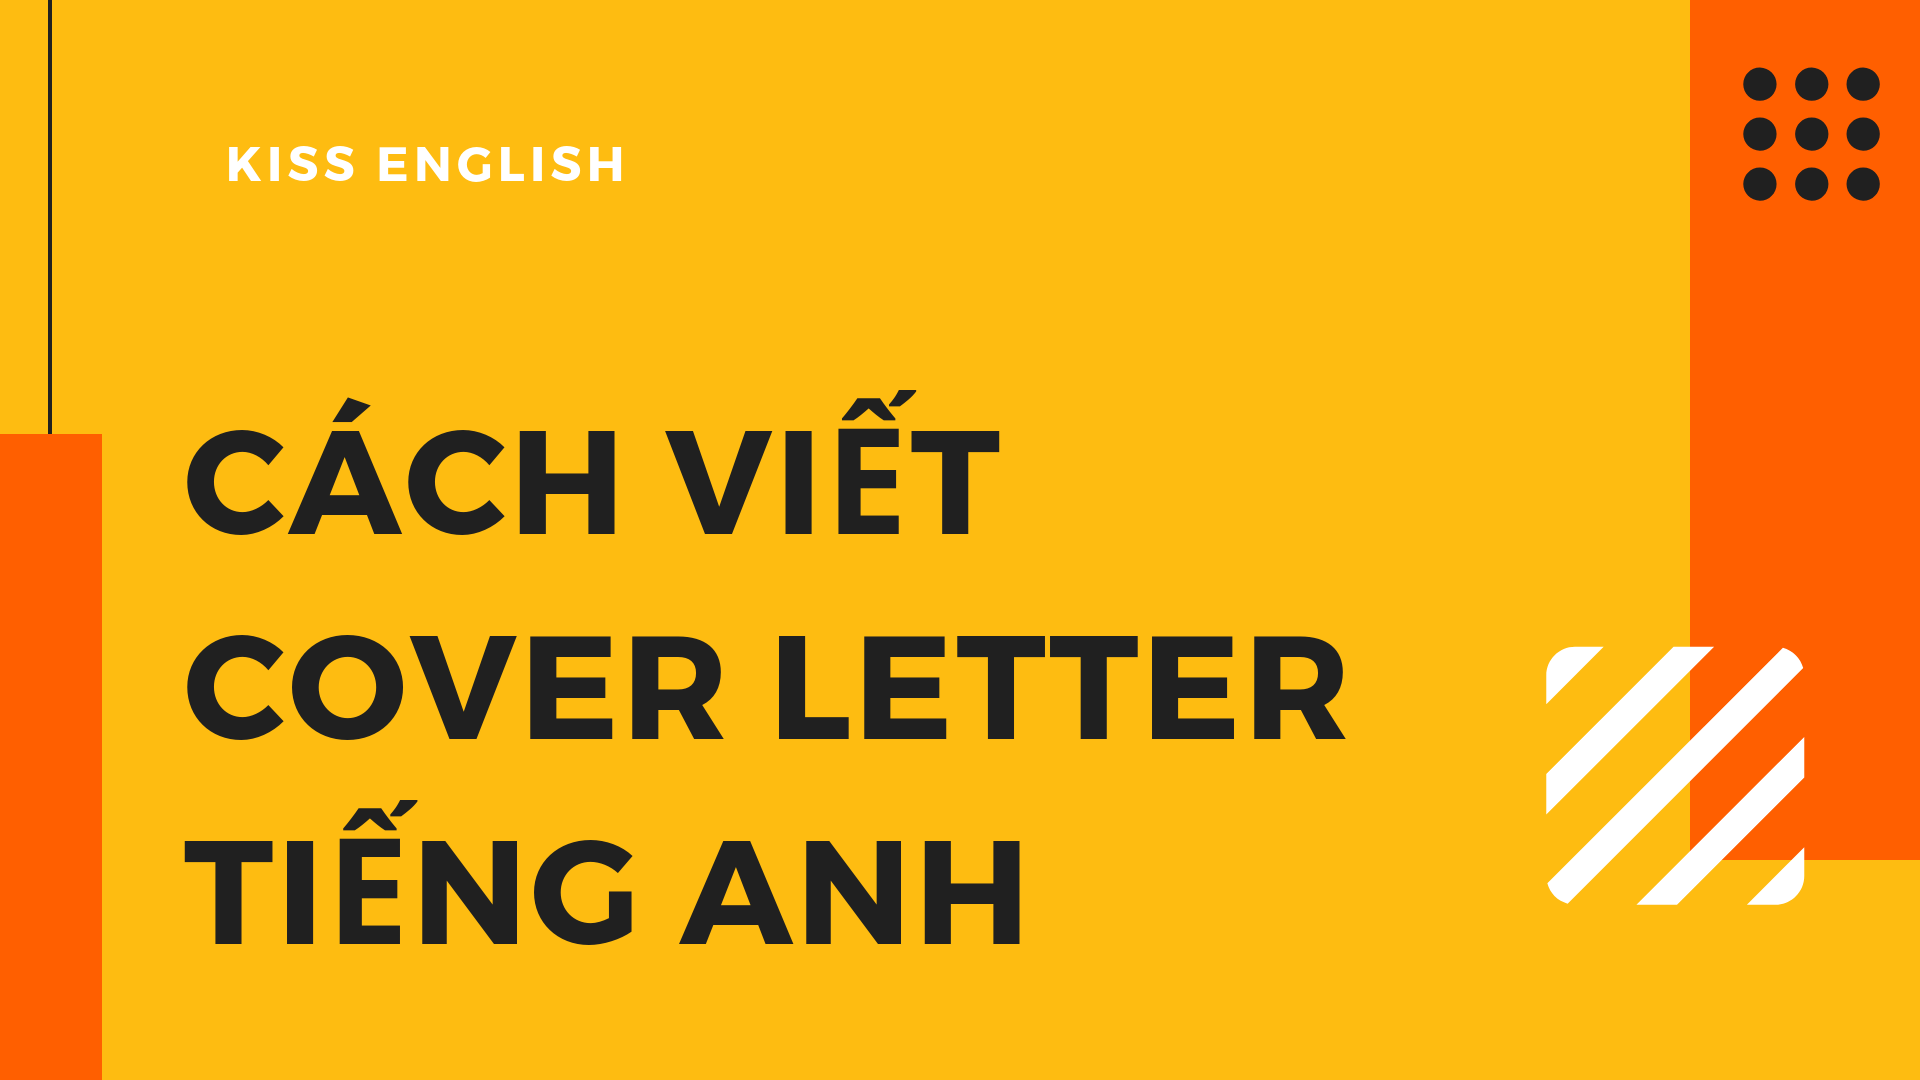 Cách viết cover letter tiếng Anh